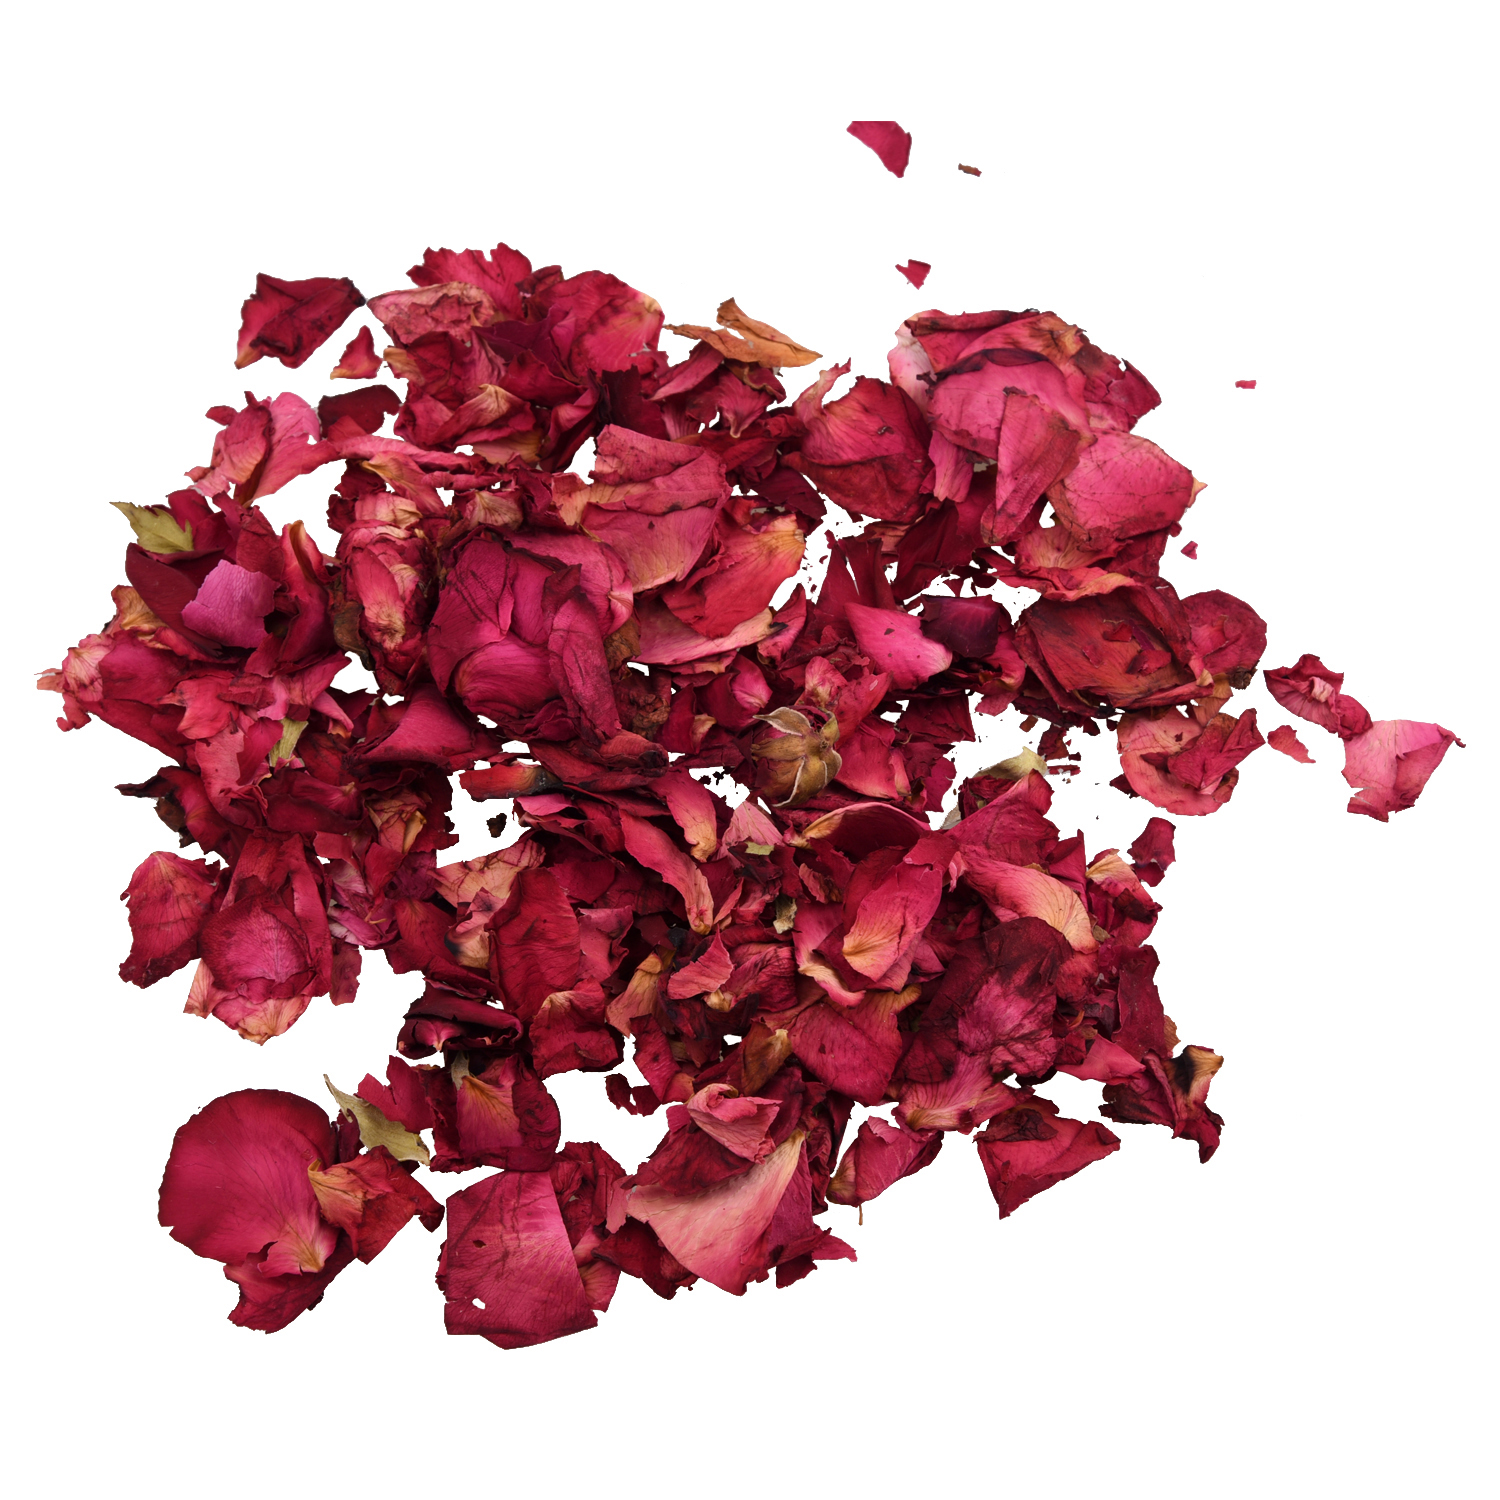 Popular Dried Rose Petals Buy Cheap Dried Rose Petals lots from China Dried R